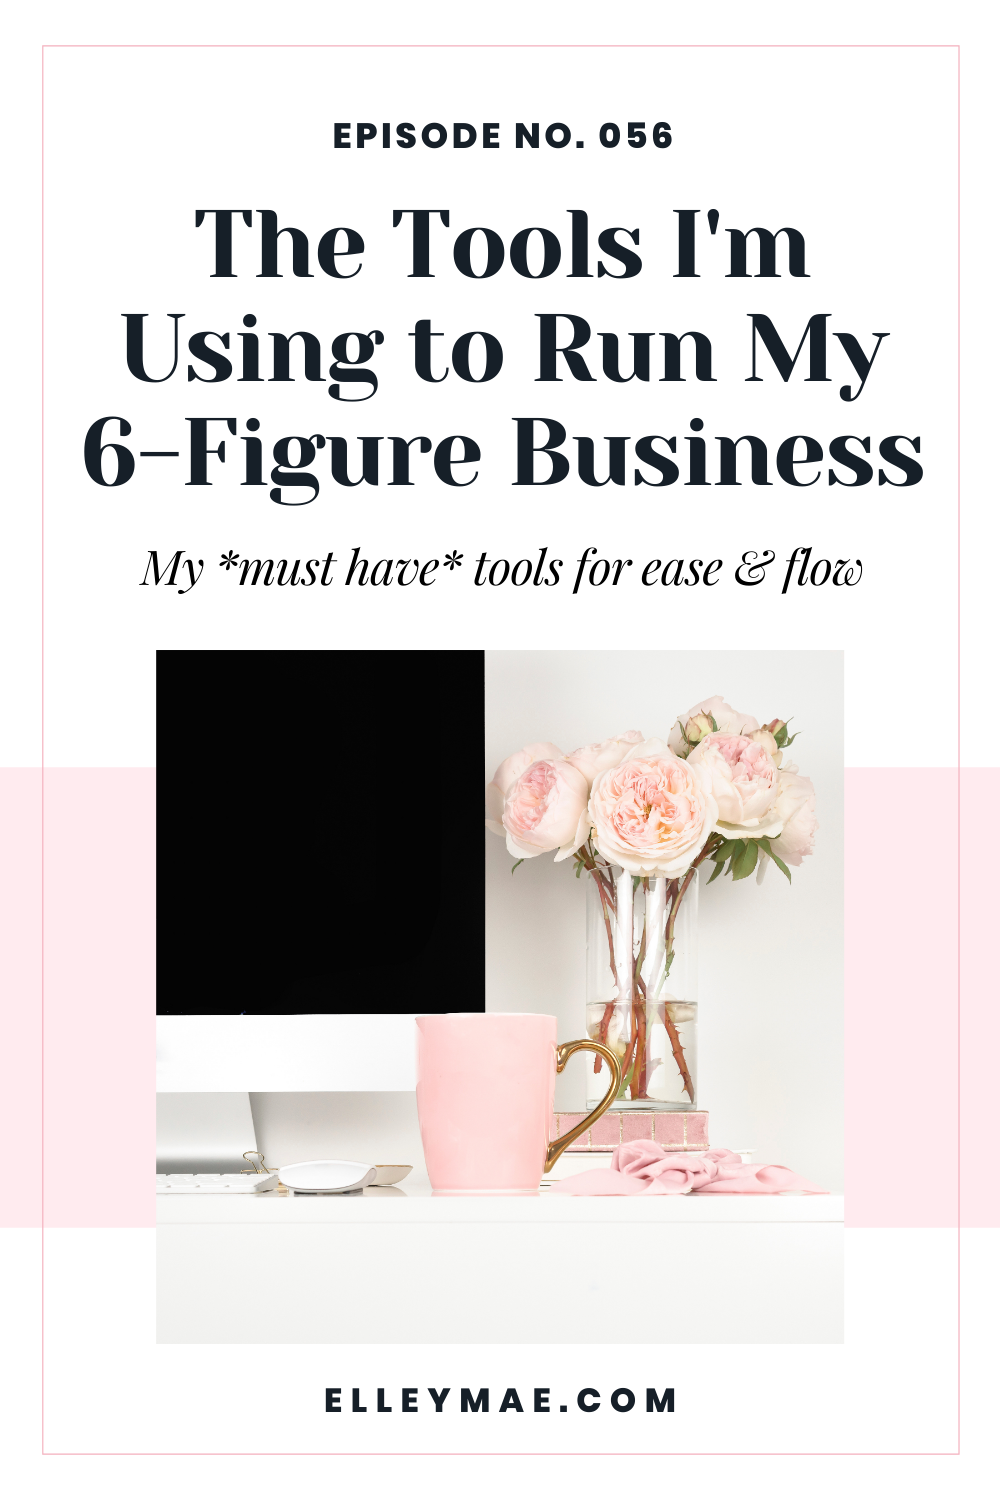 056. The Tools I'm Using to Run My 6-Figure Business